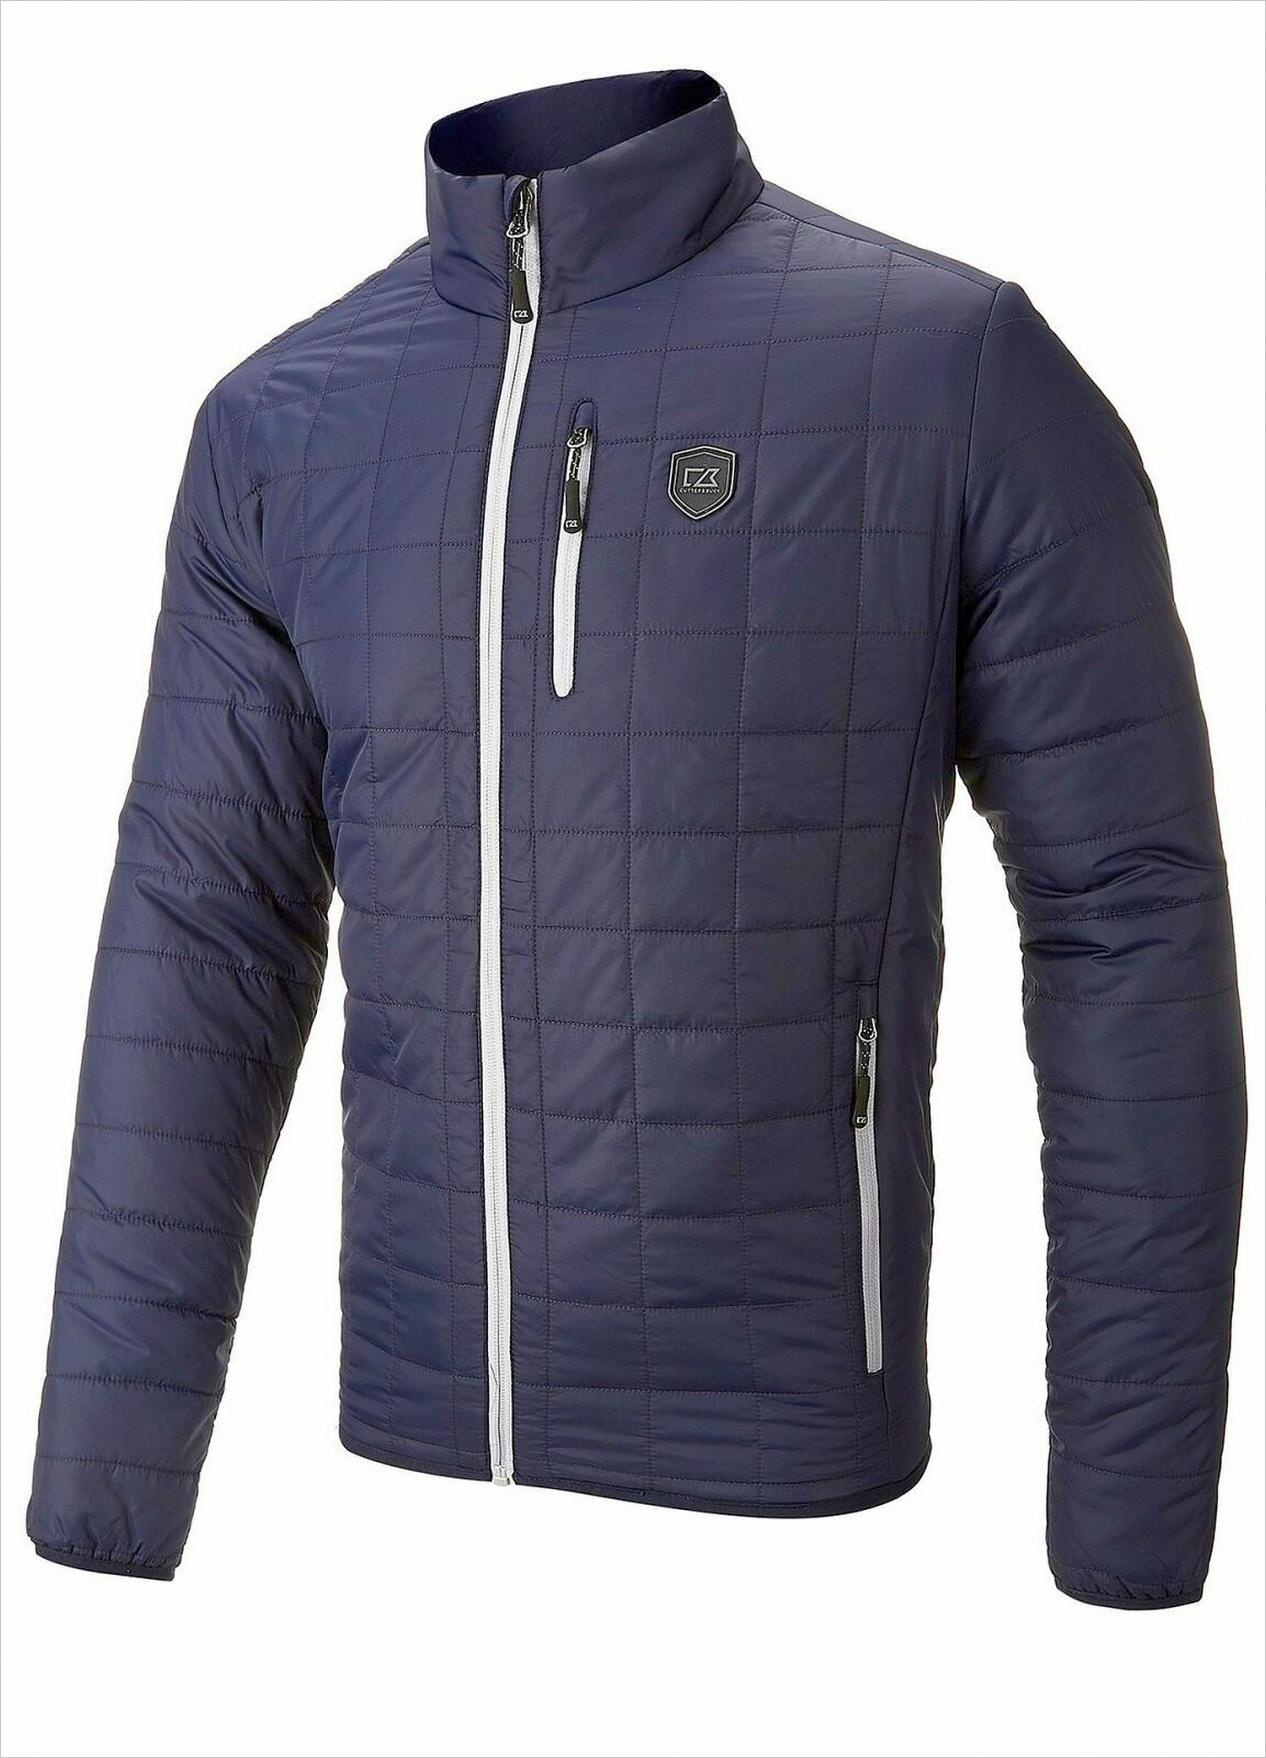 Cutter & Buck Quilted Puffa Jacket - Navy